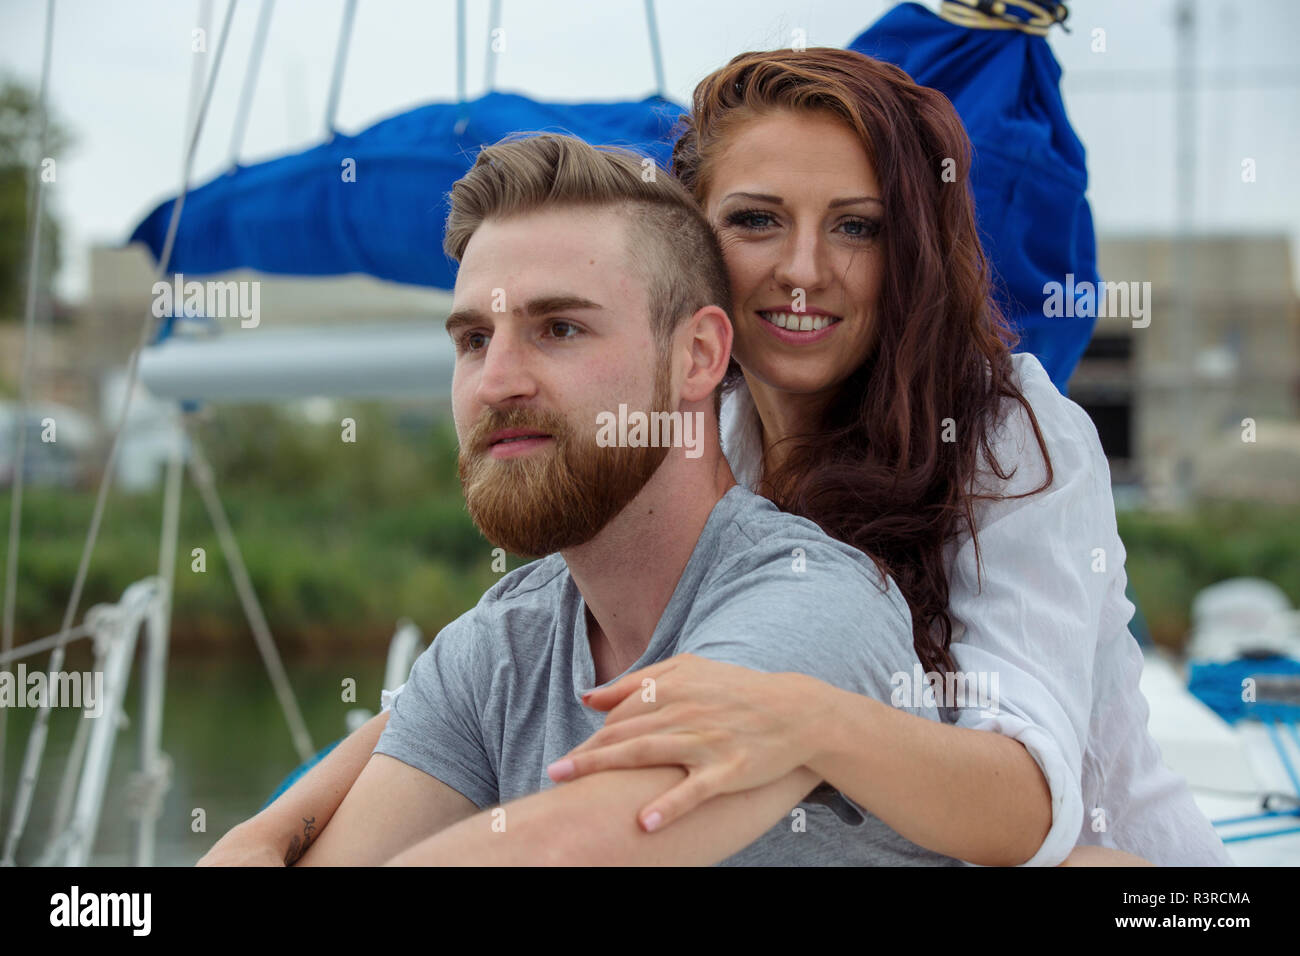 Portrait of a happy couple on a sailing boat - Stock Image